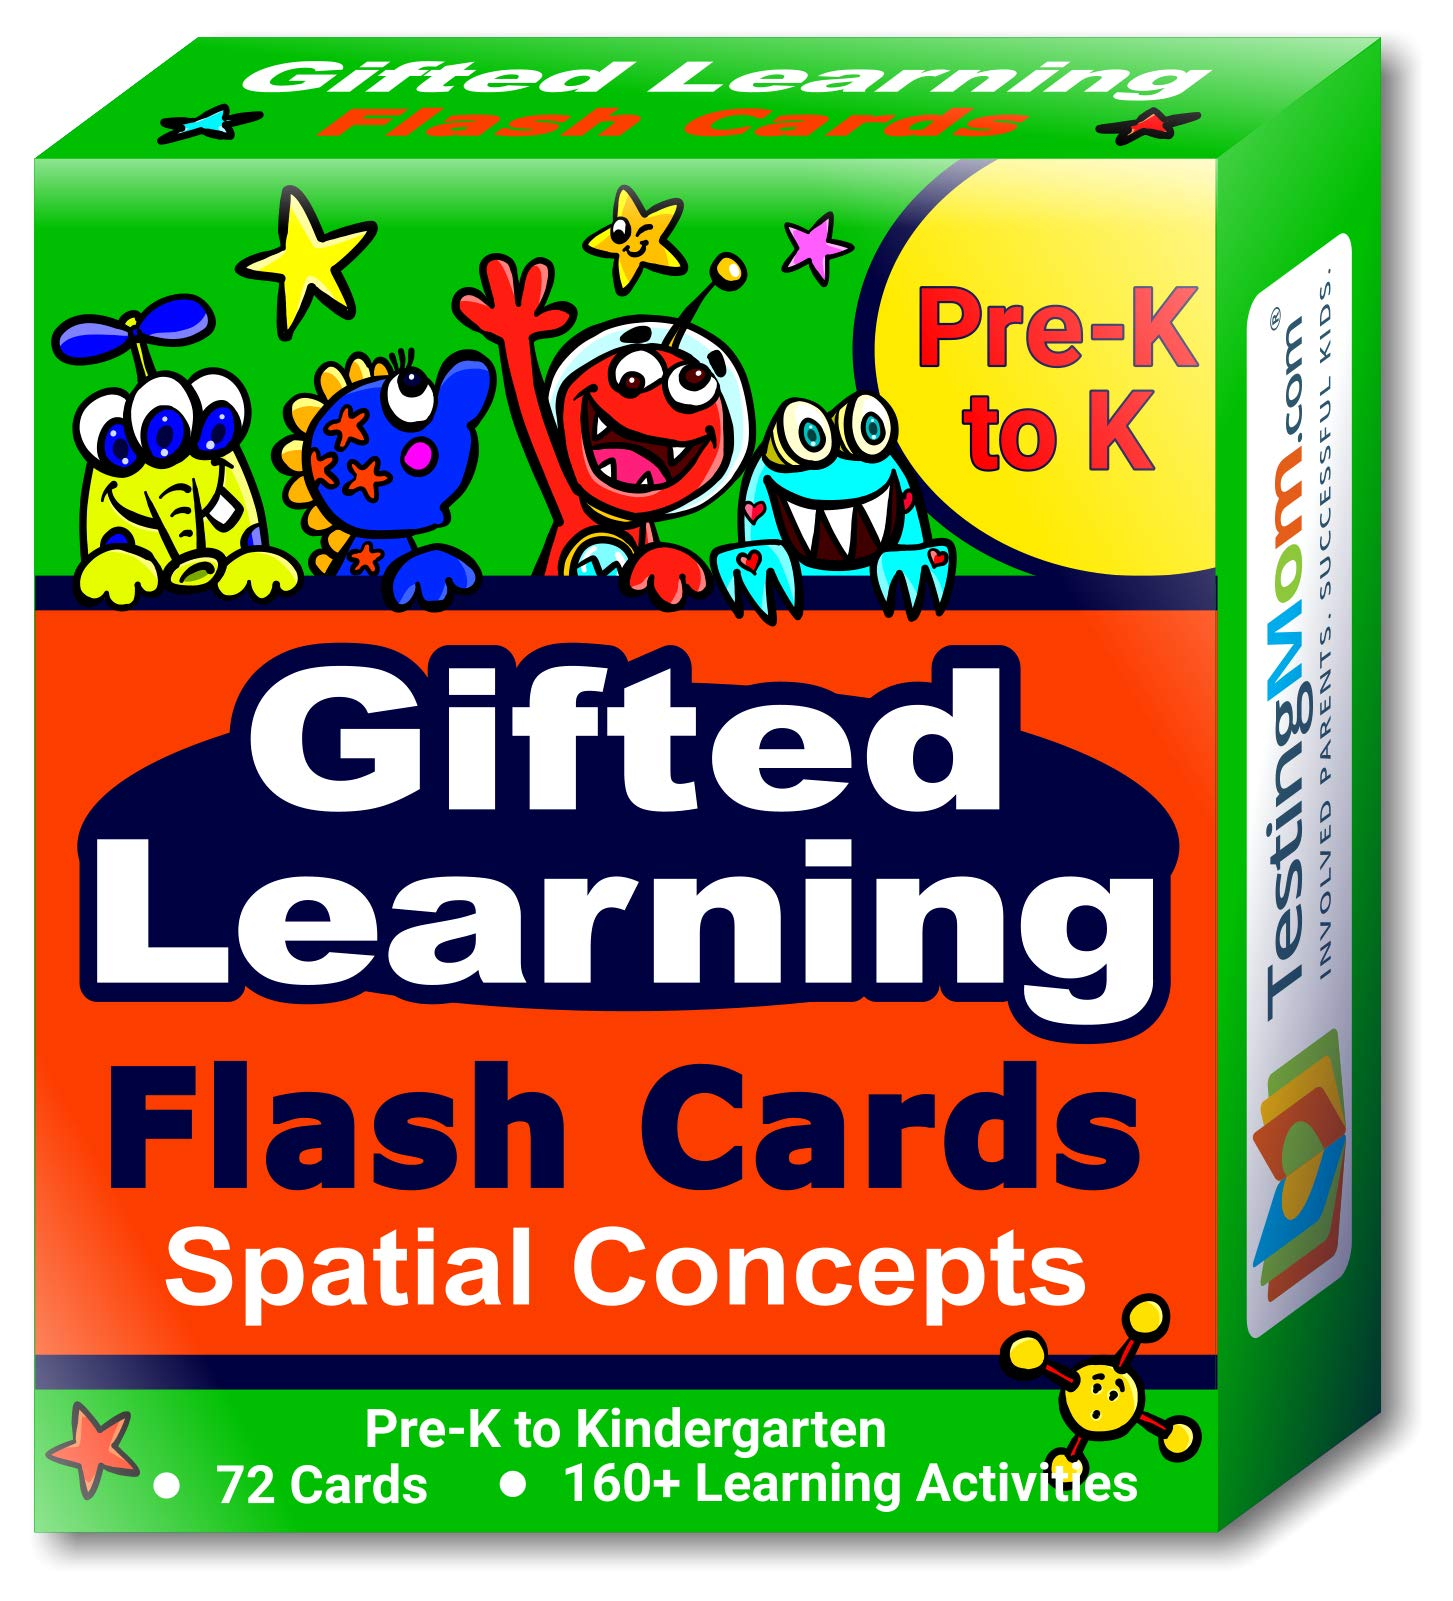 Gifted Learning Flash Cards - Visual Spatial Concepts for Pre-K - Kindergarten - 1st Grade - Educational Practice for The NNAT Test, CogAT Test, OLSAT Test, WPPSI, WISC, AABL, KBIT, SAGES and More!